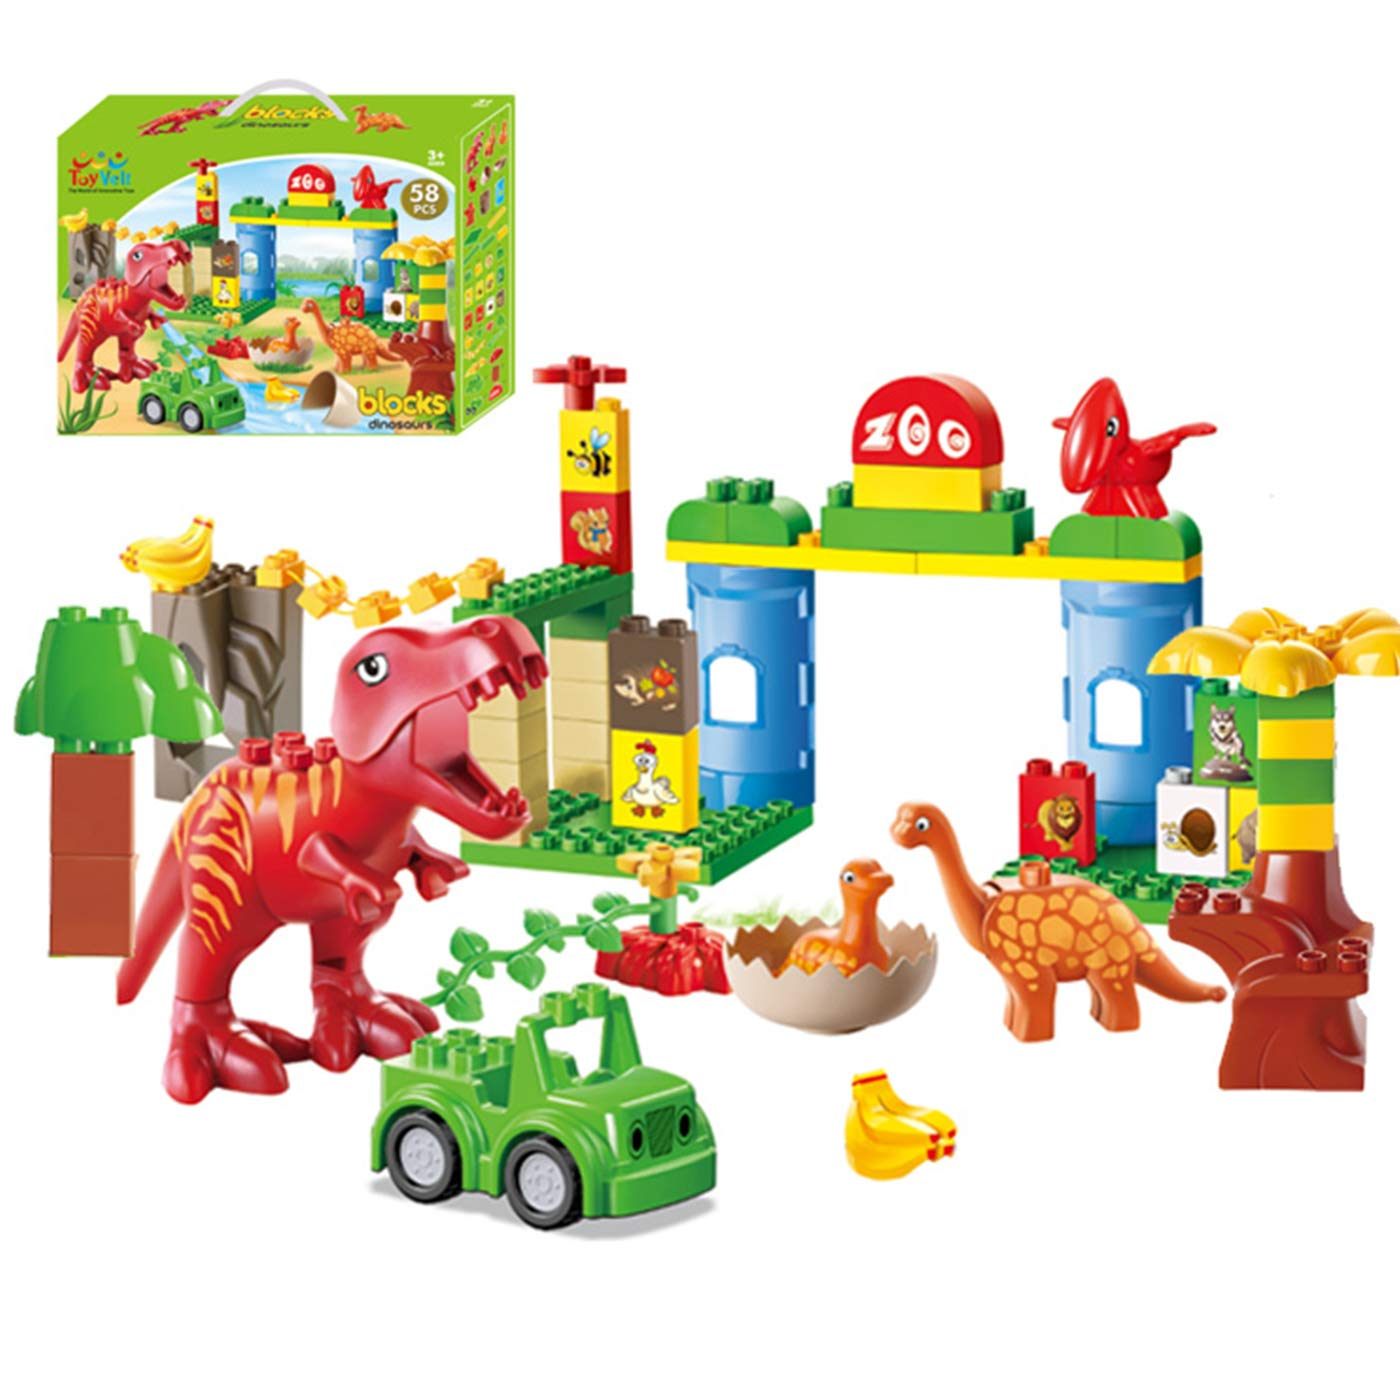 ToyVelt Dinosaur Blocks Toy – 58 Piece Jurassic Era Block Set – Jurassic Construction Toys – Entertaining and Educational Children's Toys – for Boys & Girls Ages 3 -12 Years Old